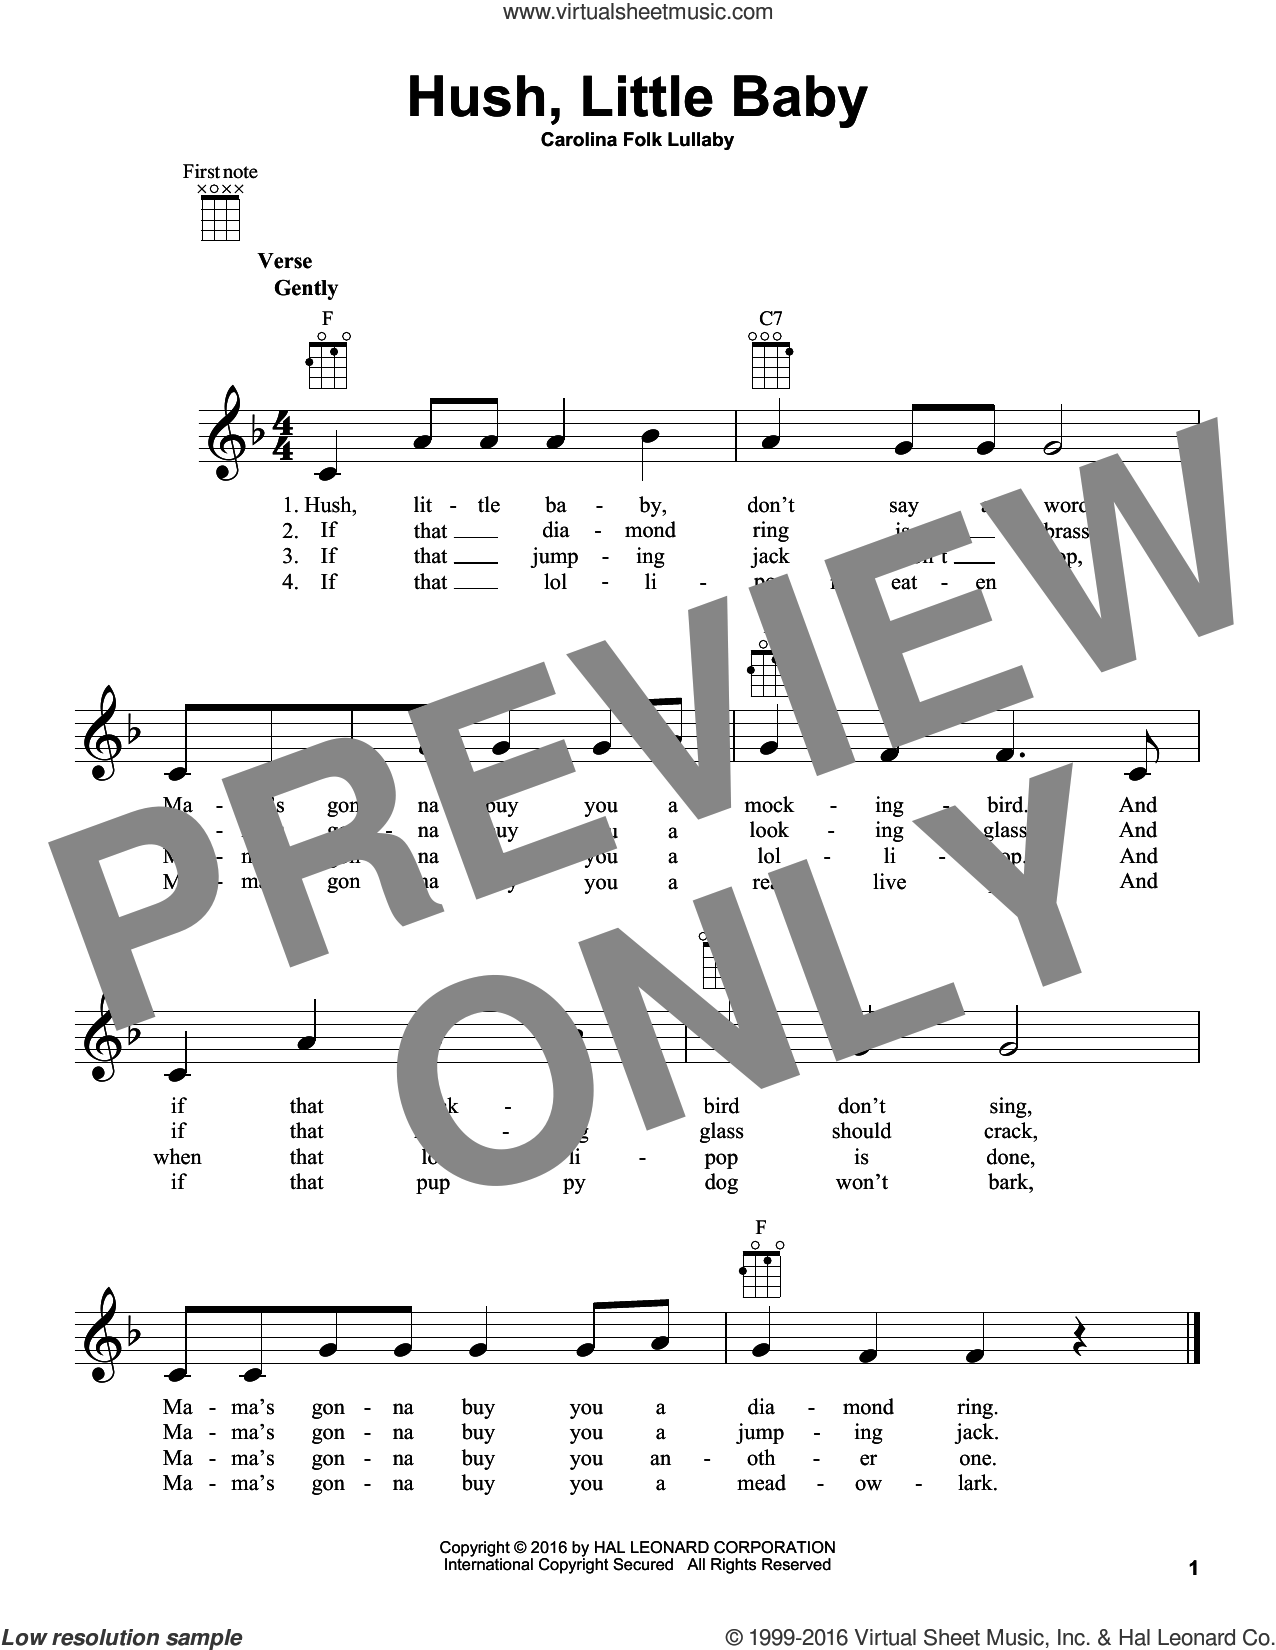 Hush, Little Baby sheet music for ukulele by Carolina Folk Lullaby